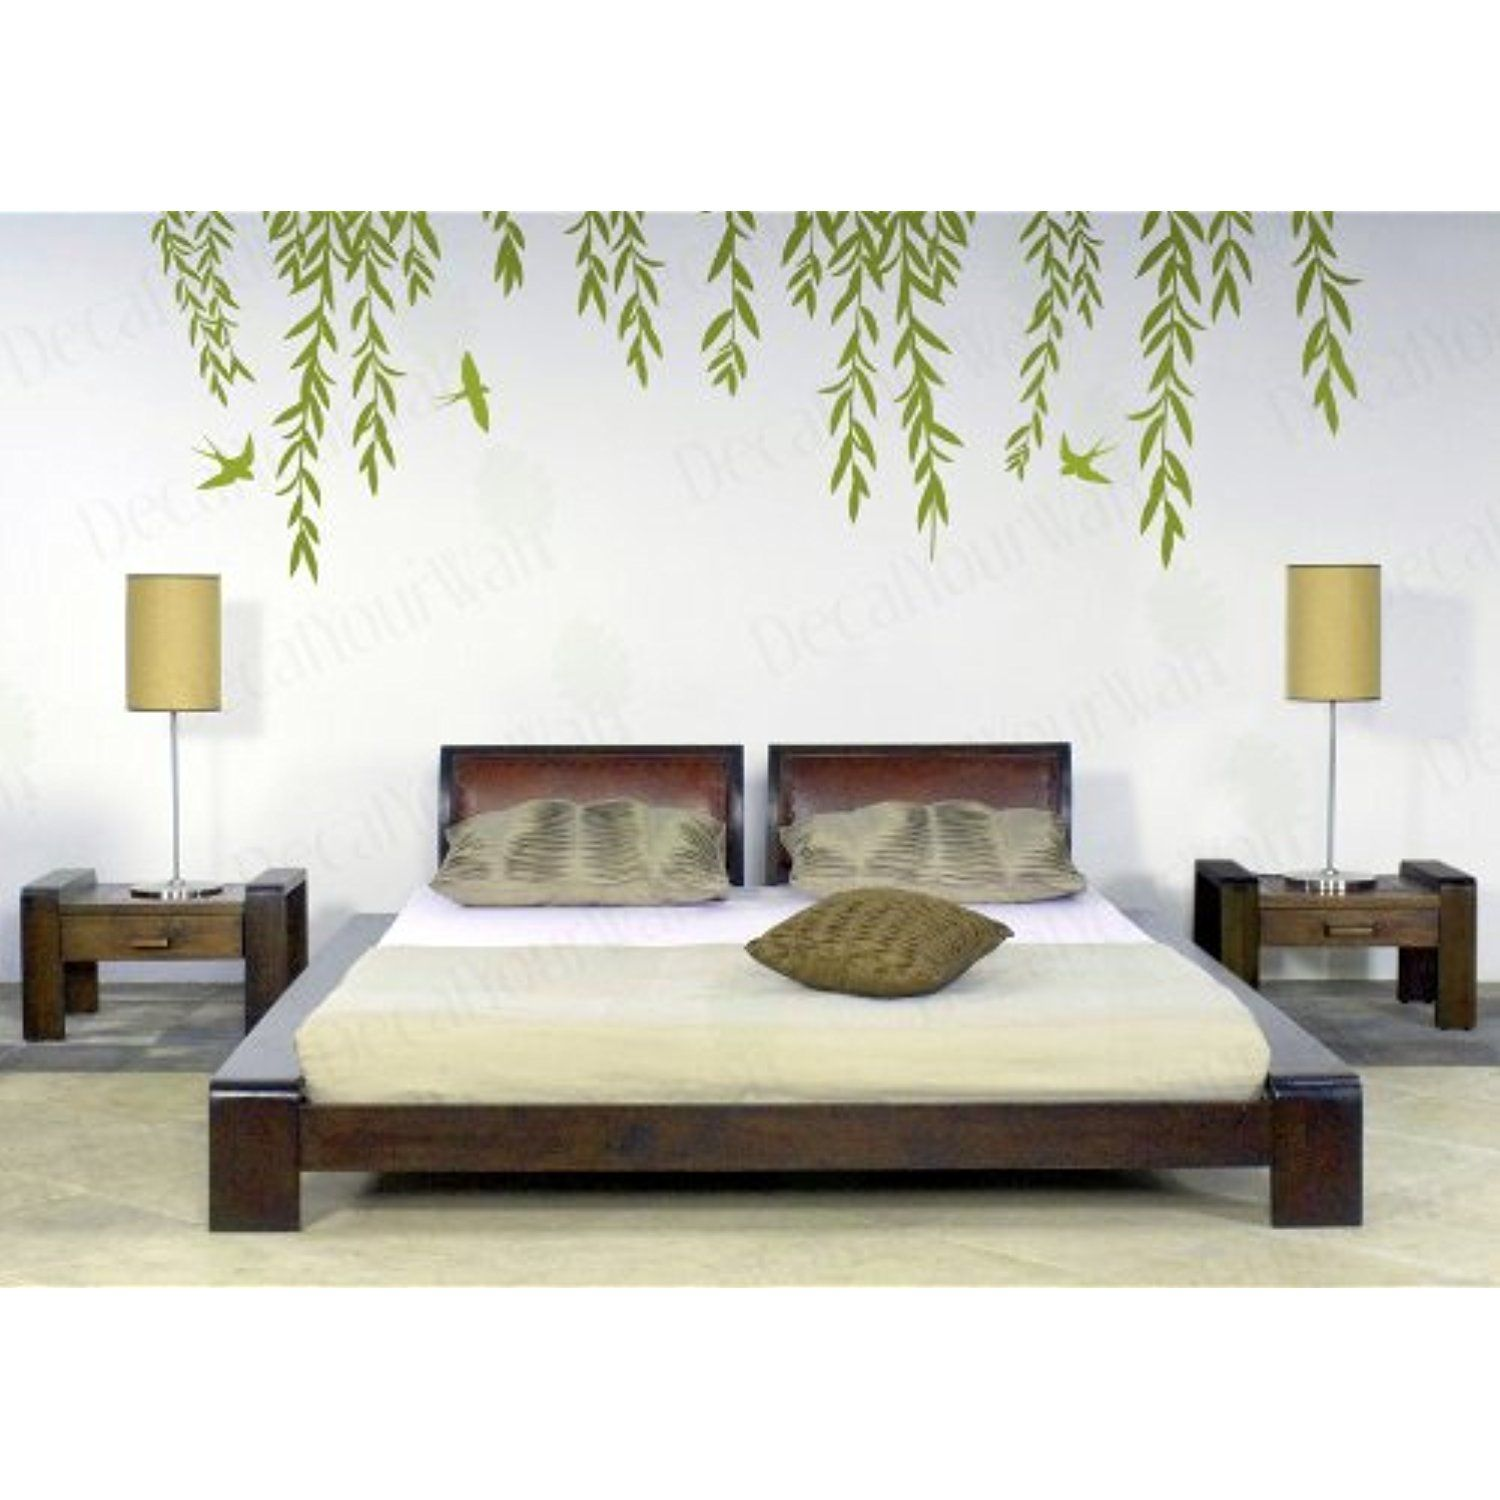 Wall Decal Tree Branch Cool Art For Living Room Vinyl Sticker Z3622 Living Room Vinyl Wall Decals For Bedroom Tree Wall Decal